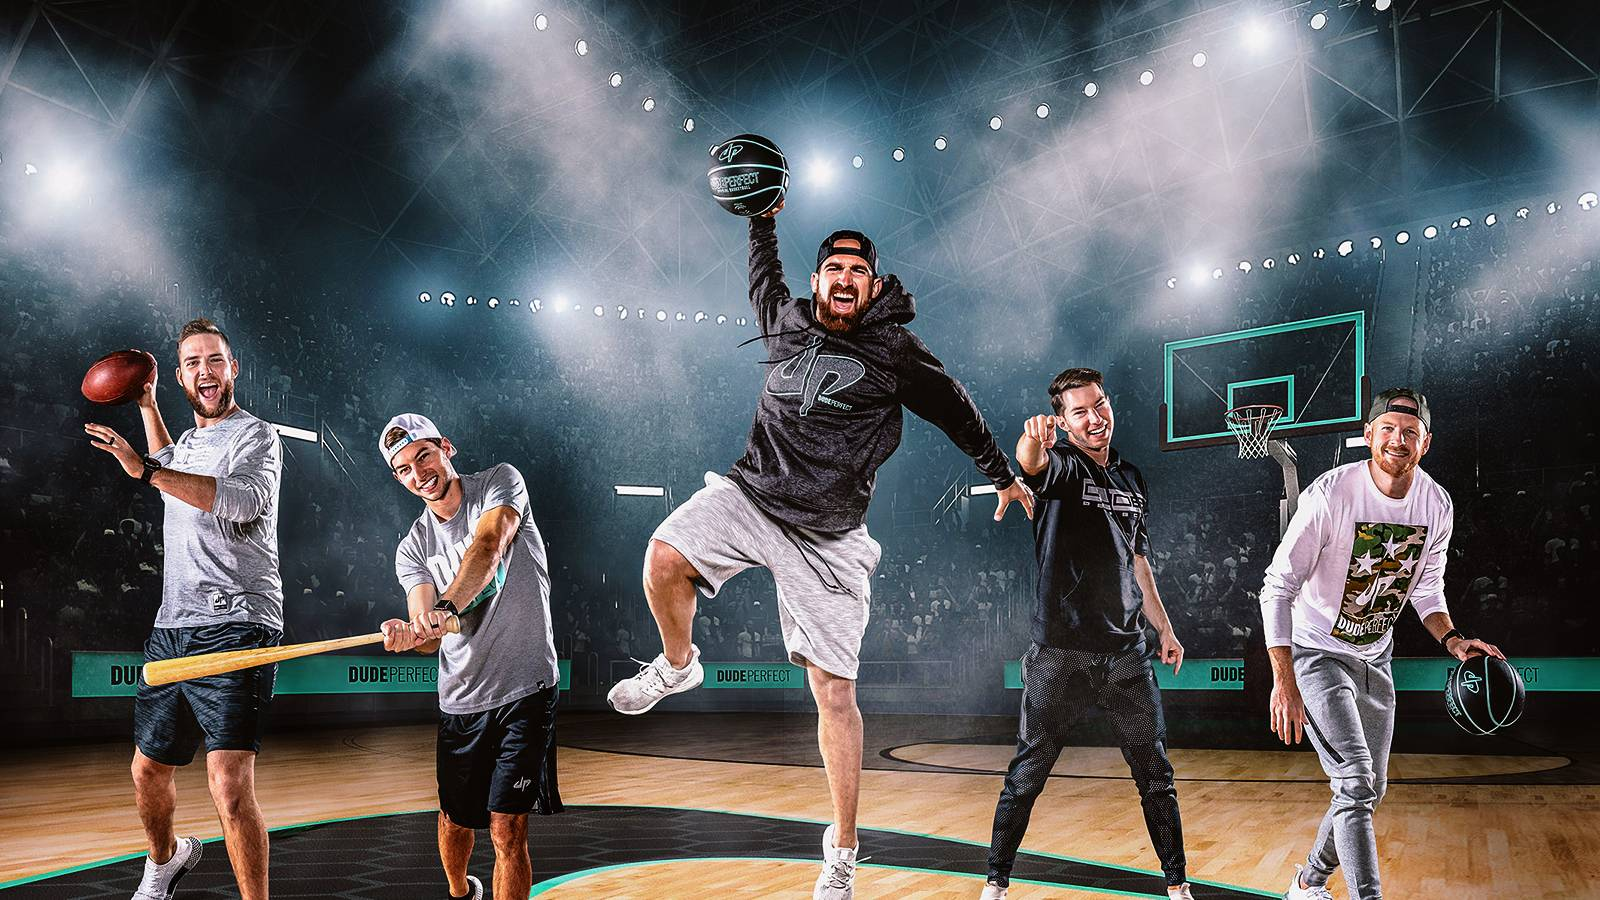 Dude Perfect (Rescheduled from 7/23/2020)